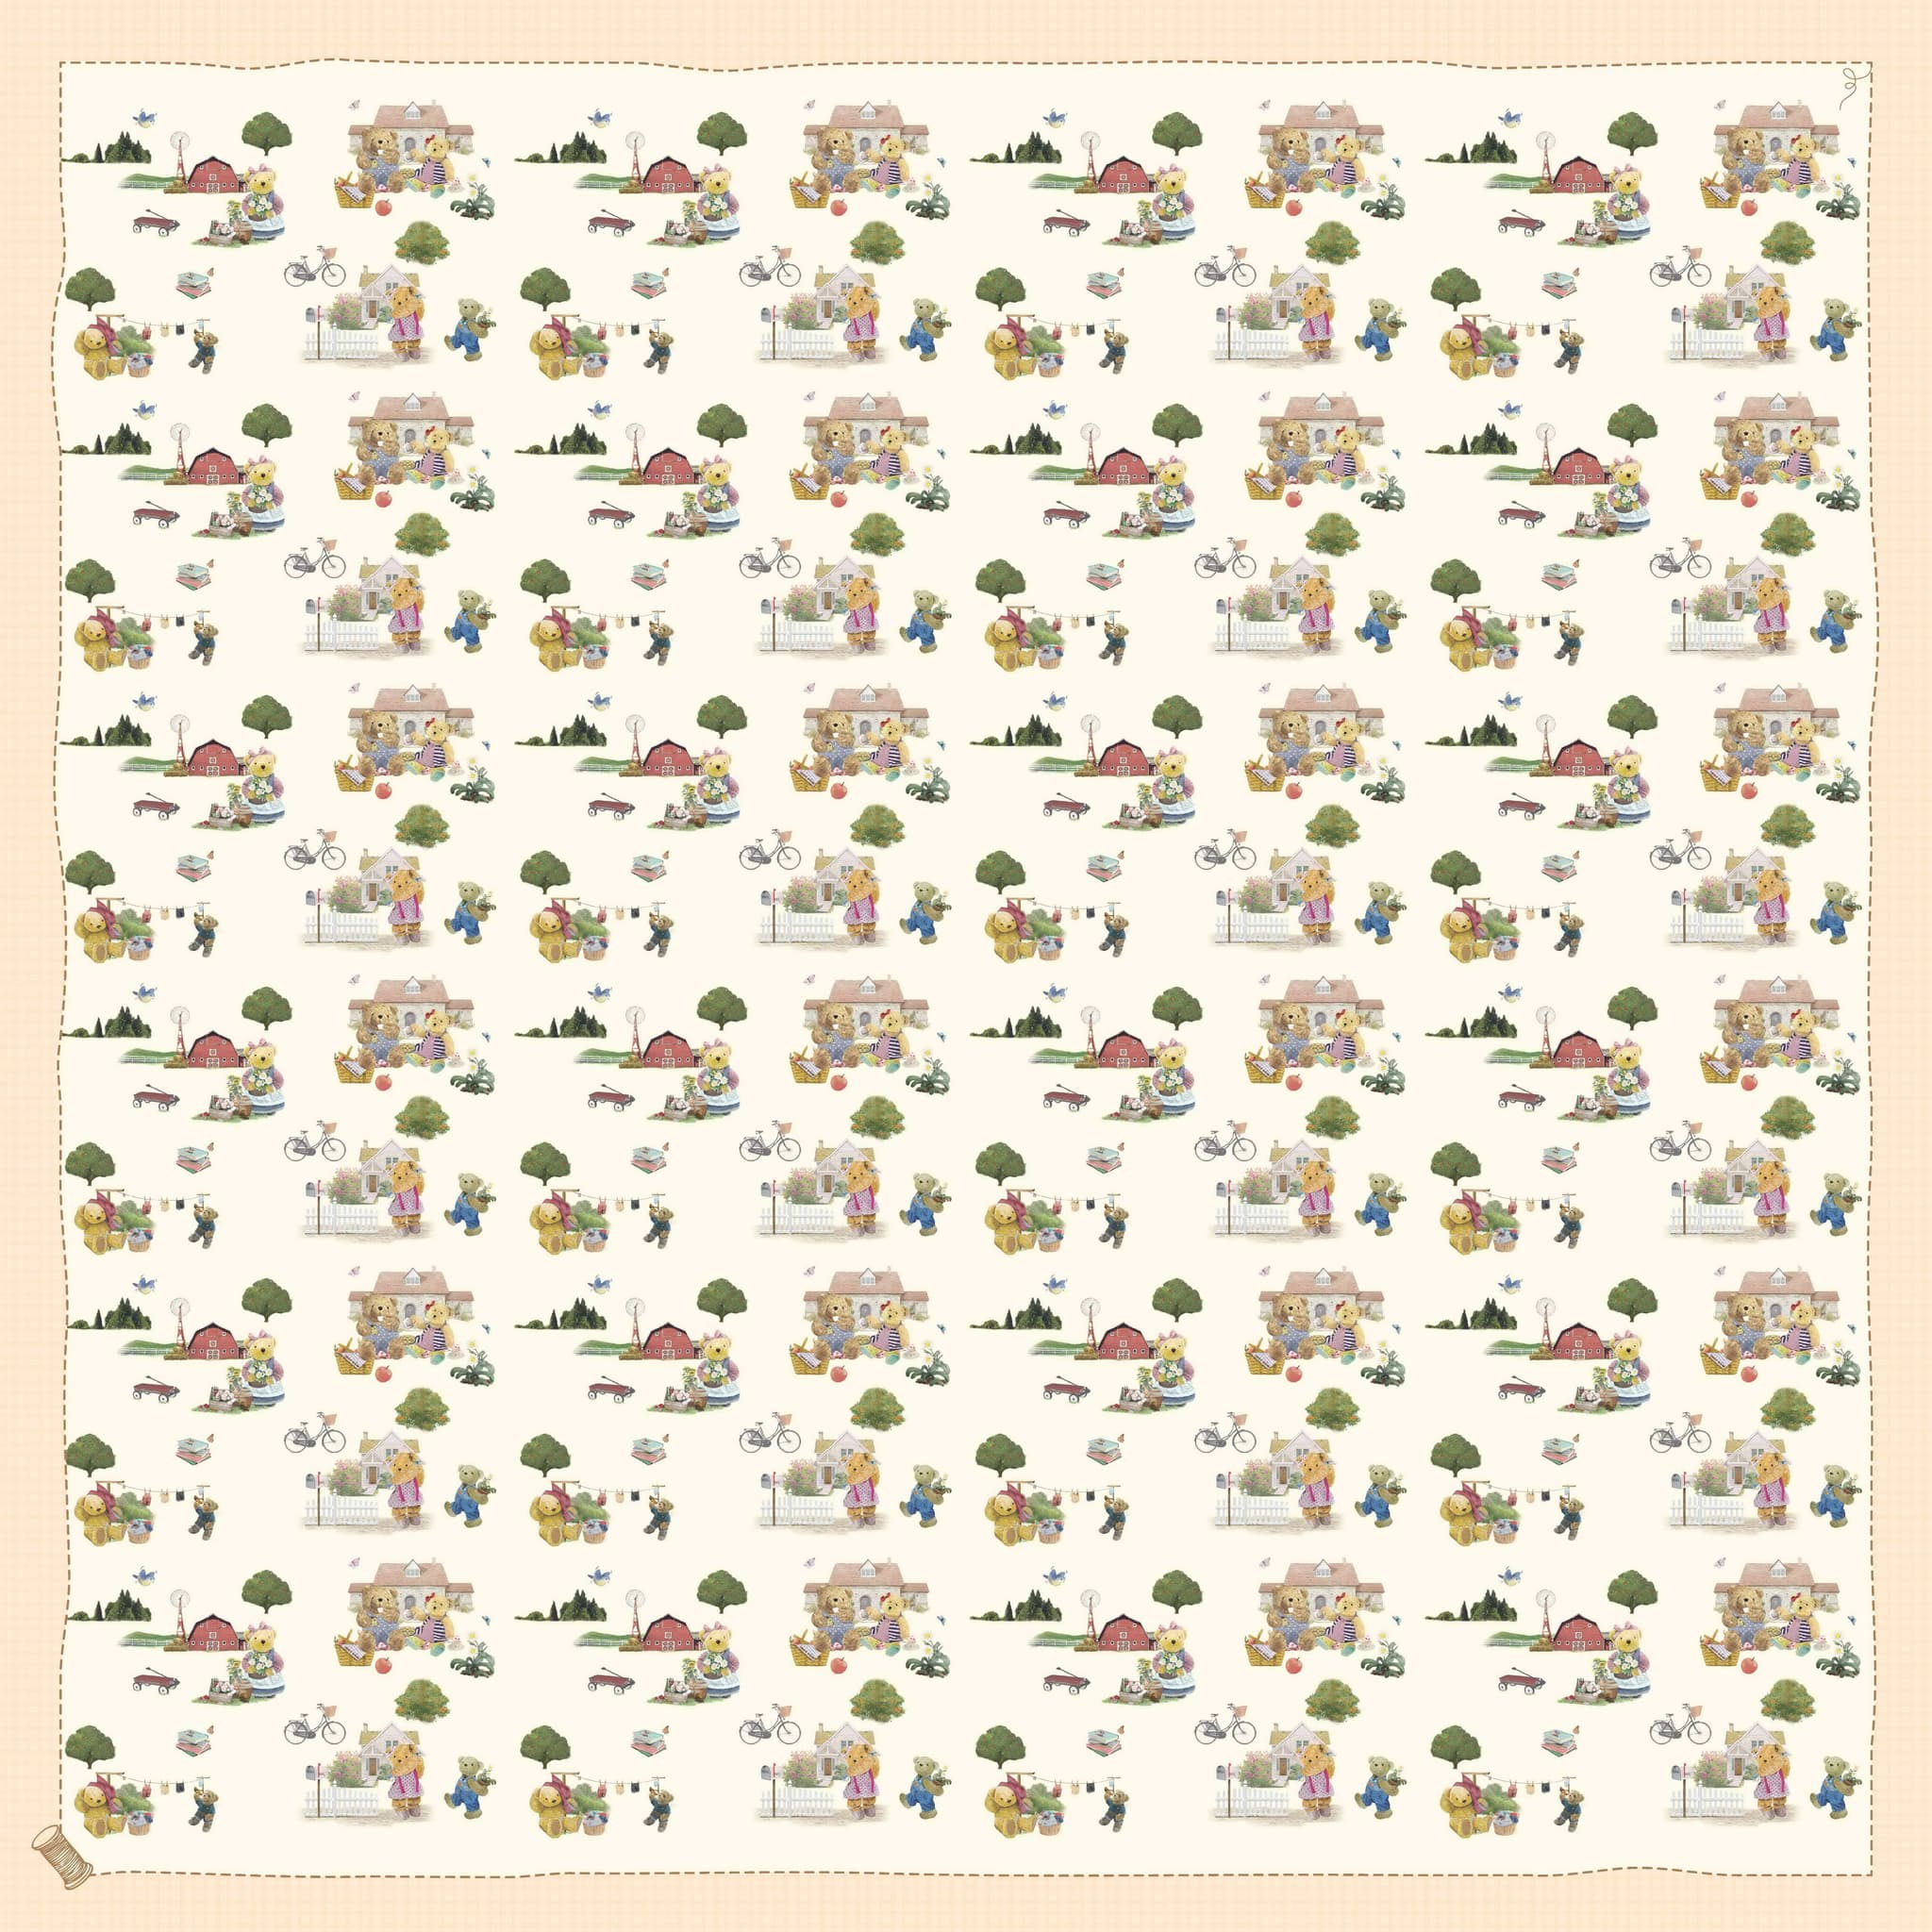 SCARF SCENERY PATTERN TEDDY HOUSE